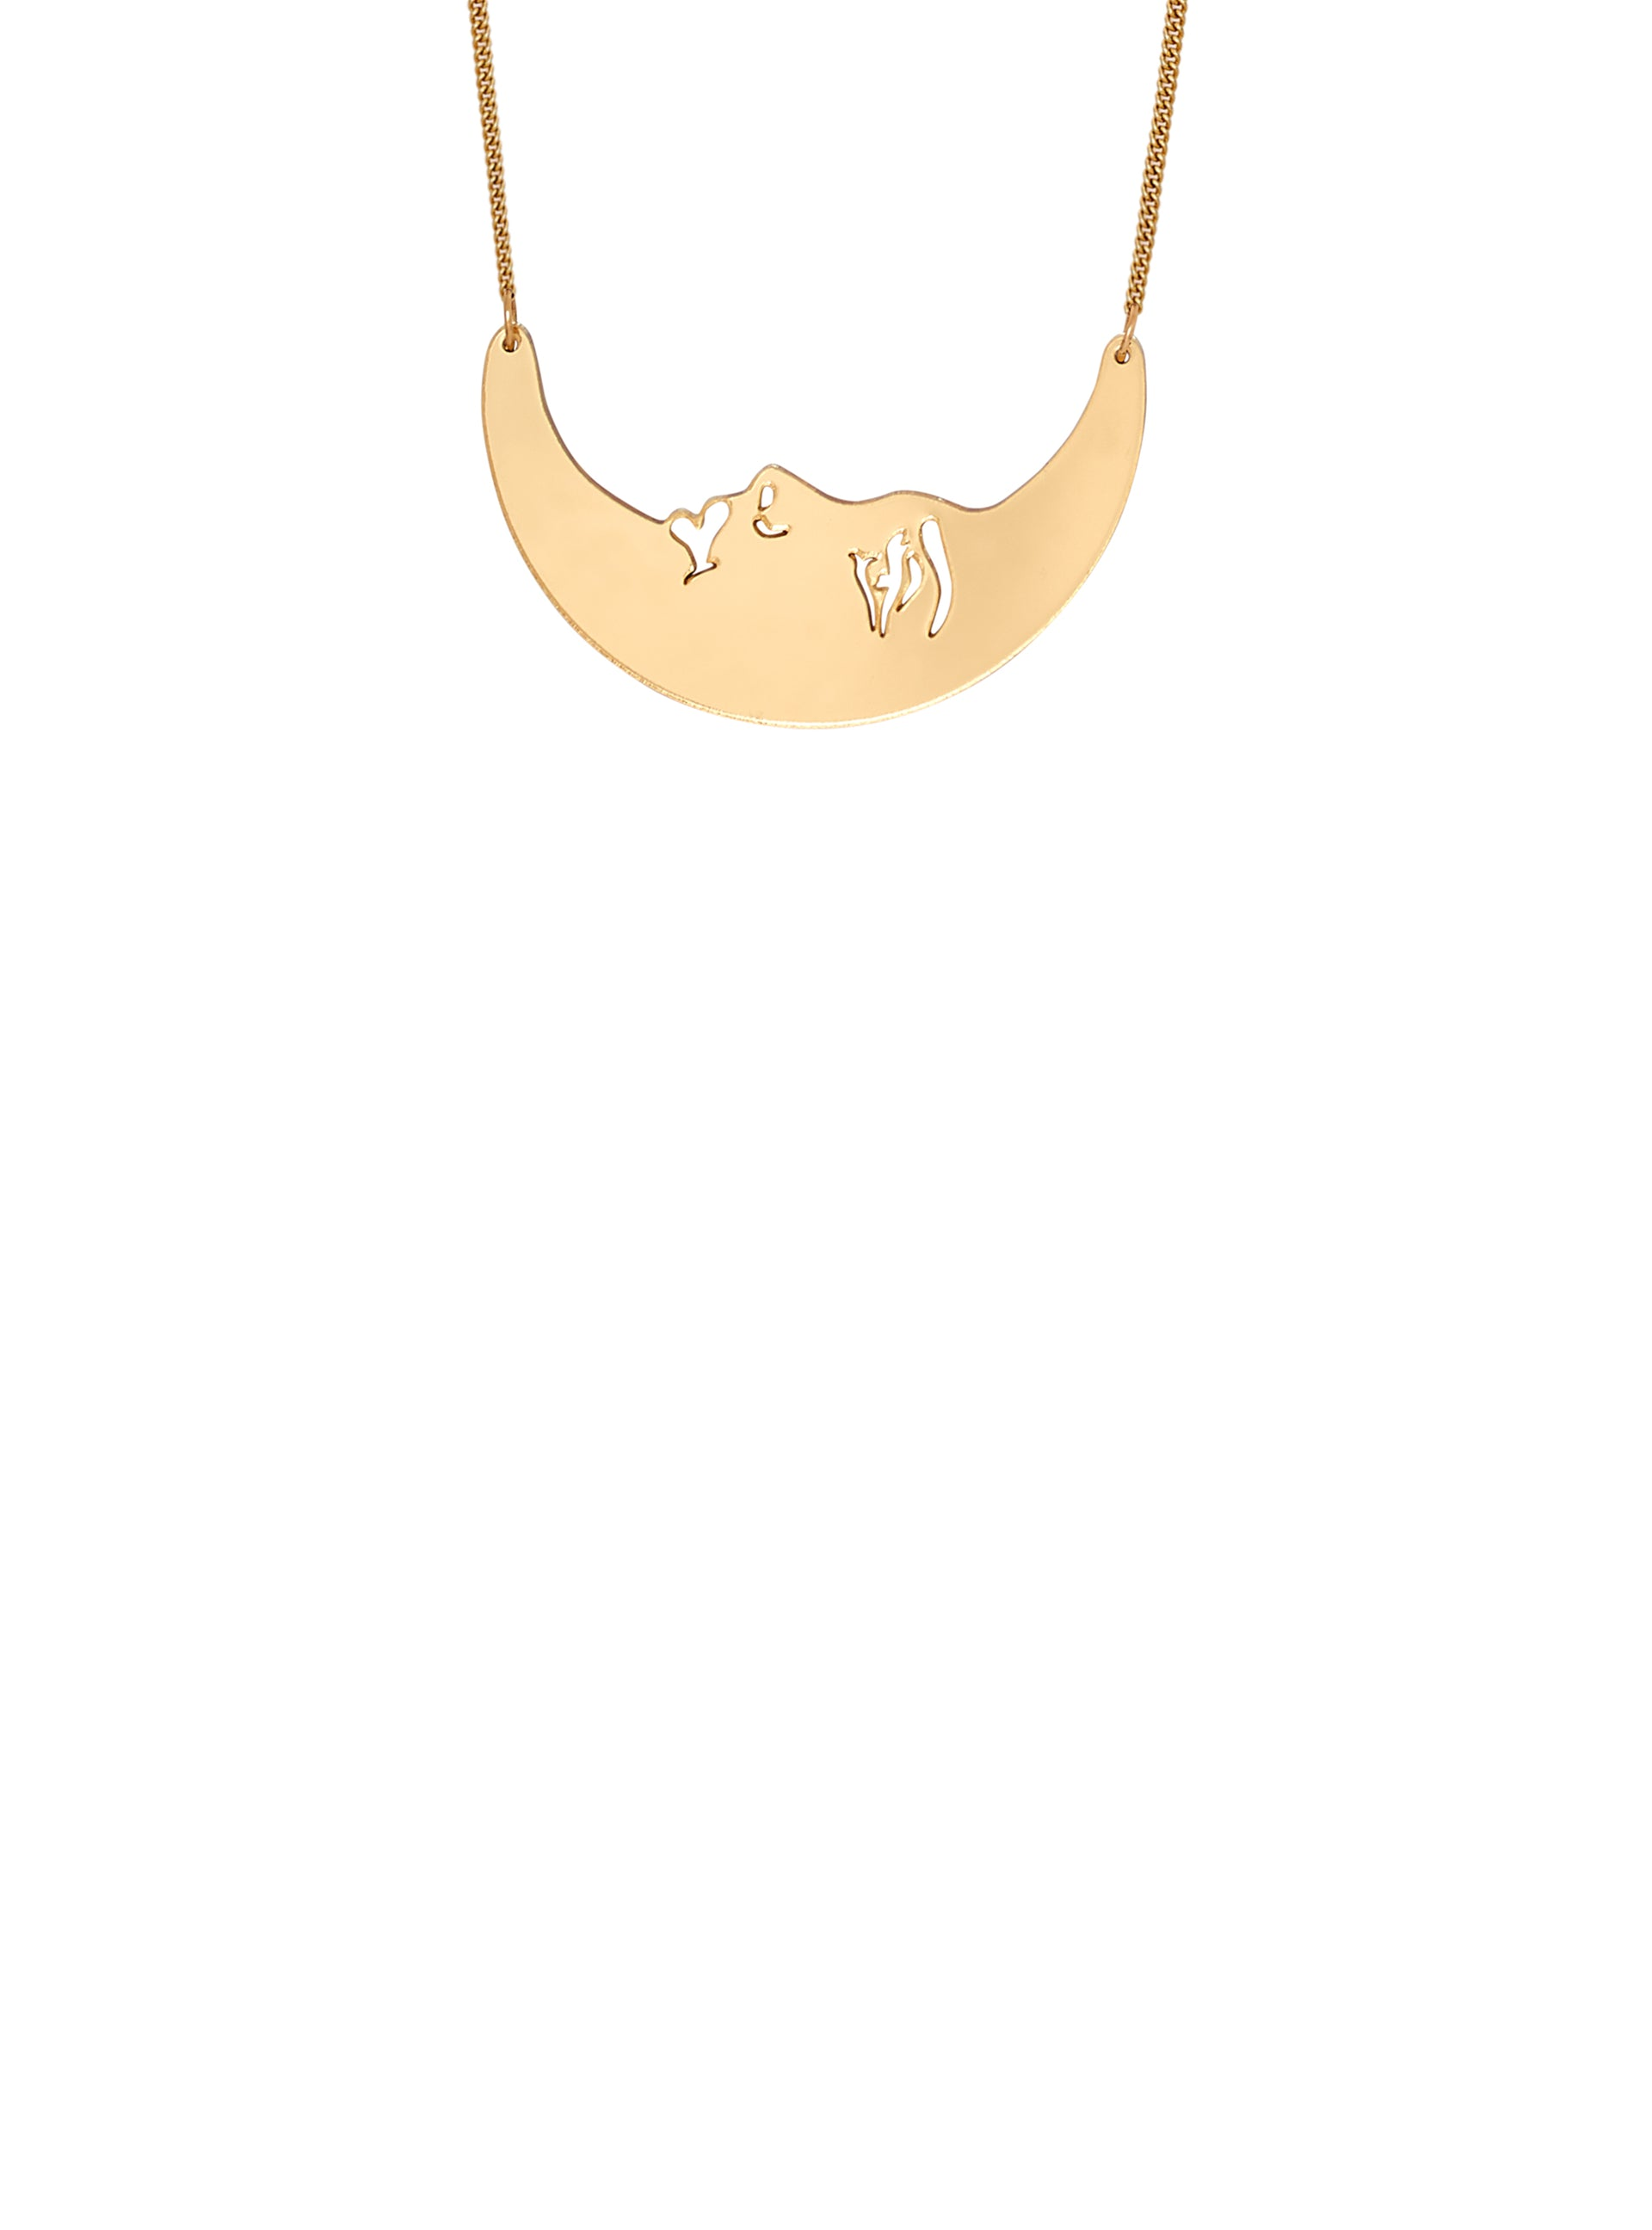 La Luna Moon Small Necklace - Gold